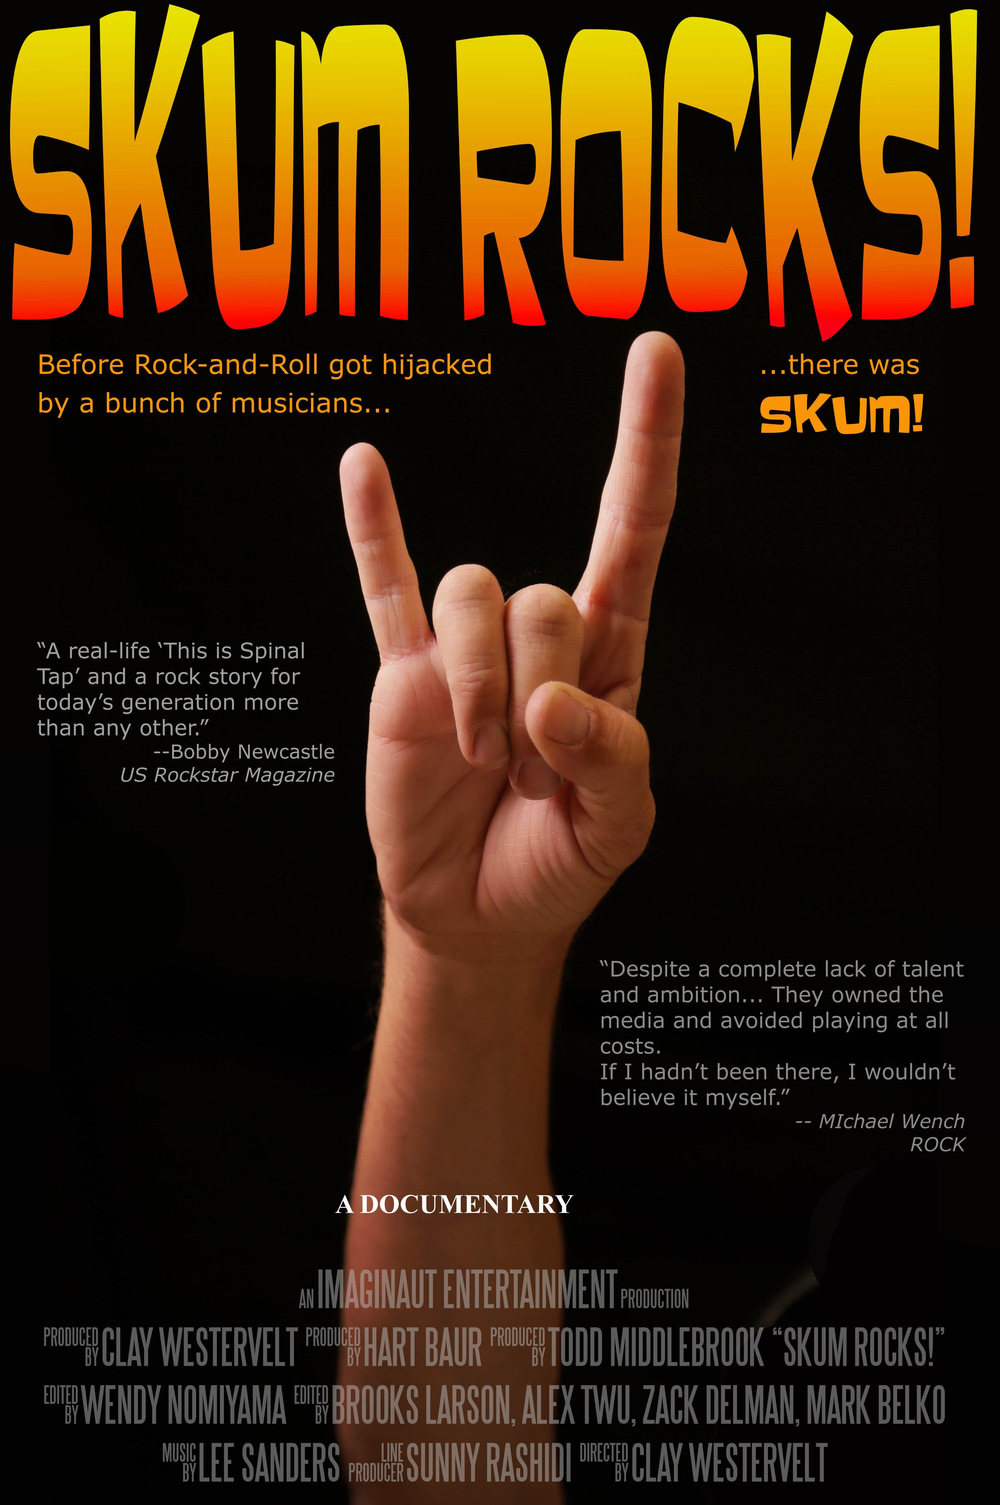 Skum_Rocks!_movie_poster_2014.jpg